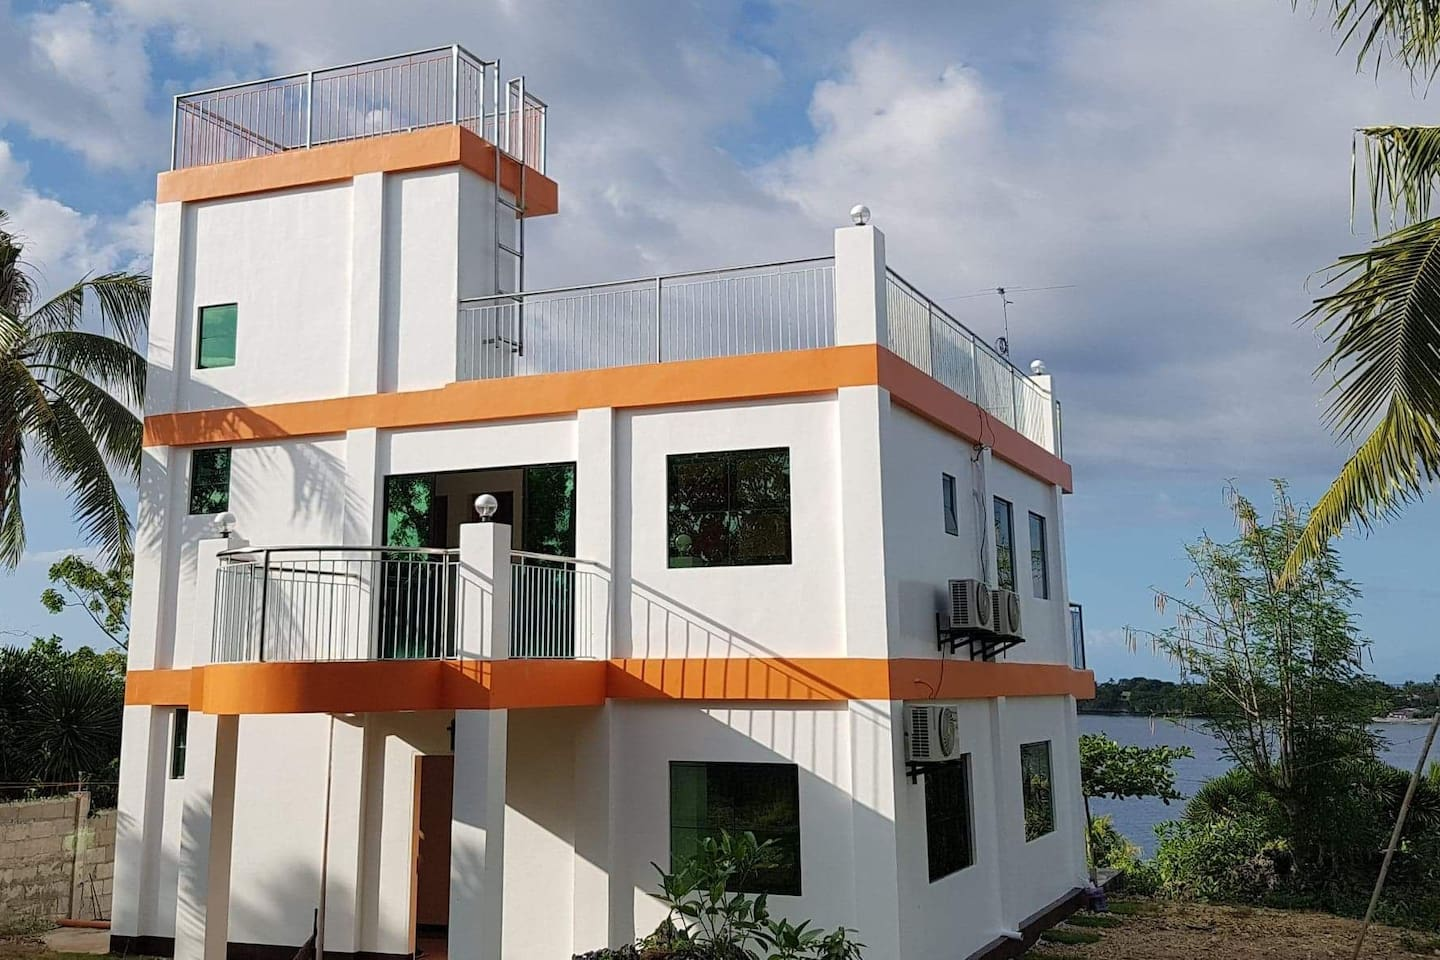 Island View Whitehouse is a newly built 3 storey house, with balcony in the bedrooms all facing the Tulang Diot Island, with rooftop great for bonding with family and friends or for  sunset viewing, mountains on the other side, and sea horizons.